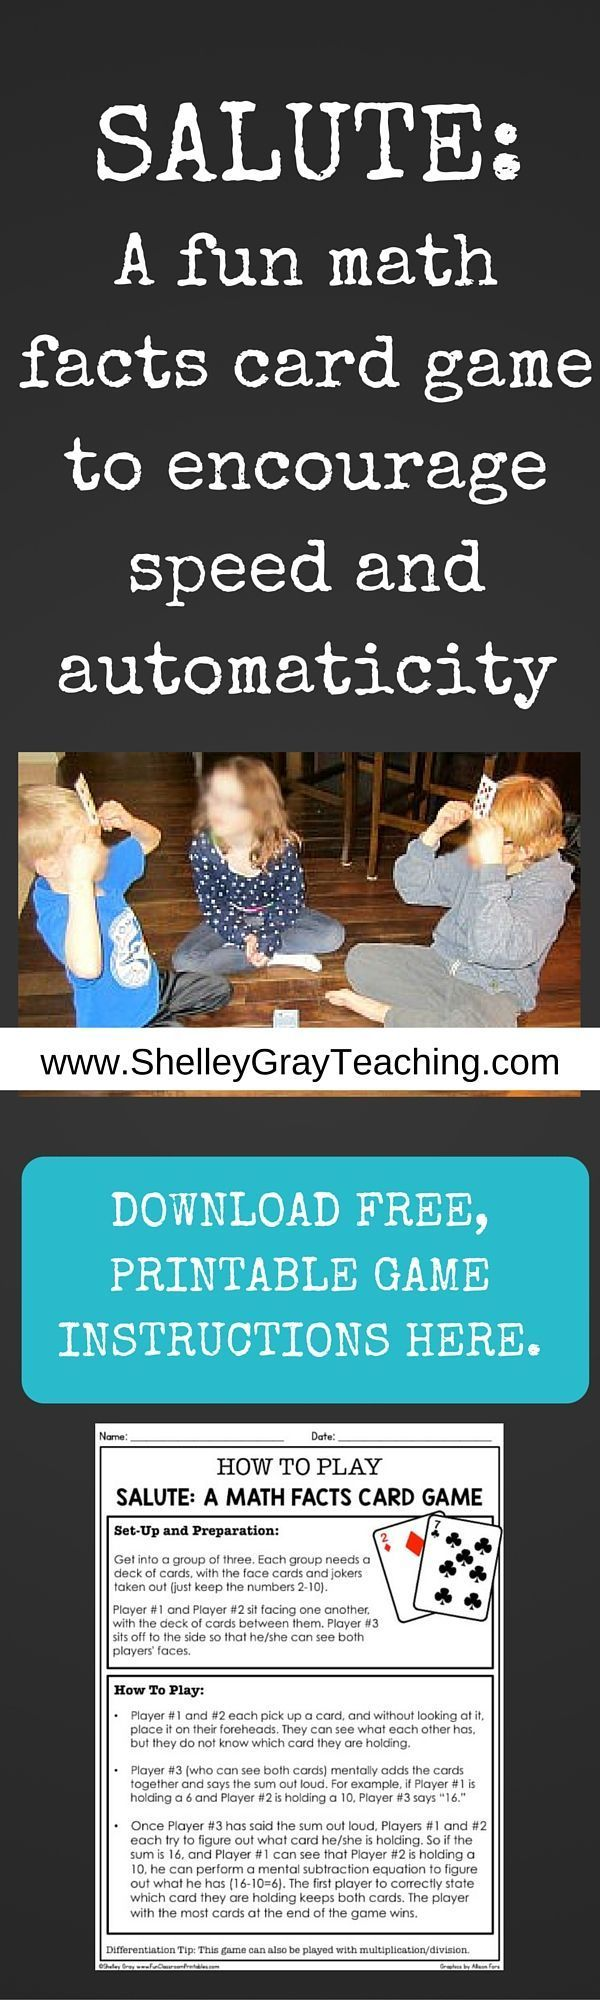 Salute: A Great Math Fact Card Game for Speed and Automaticity ...